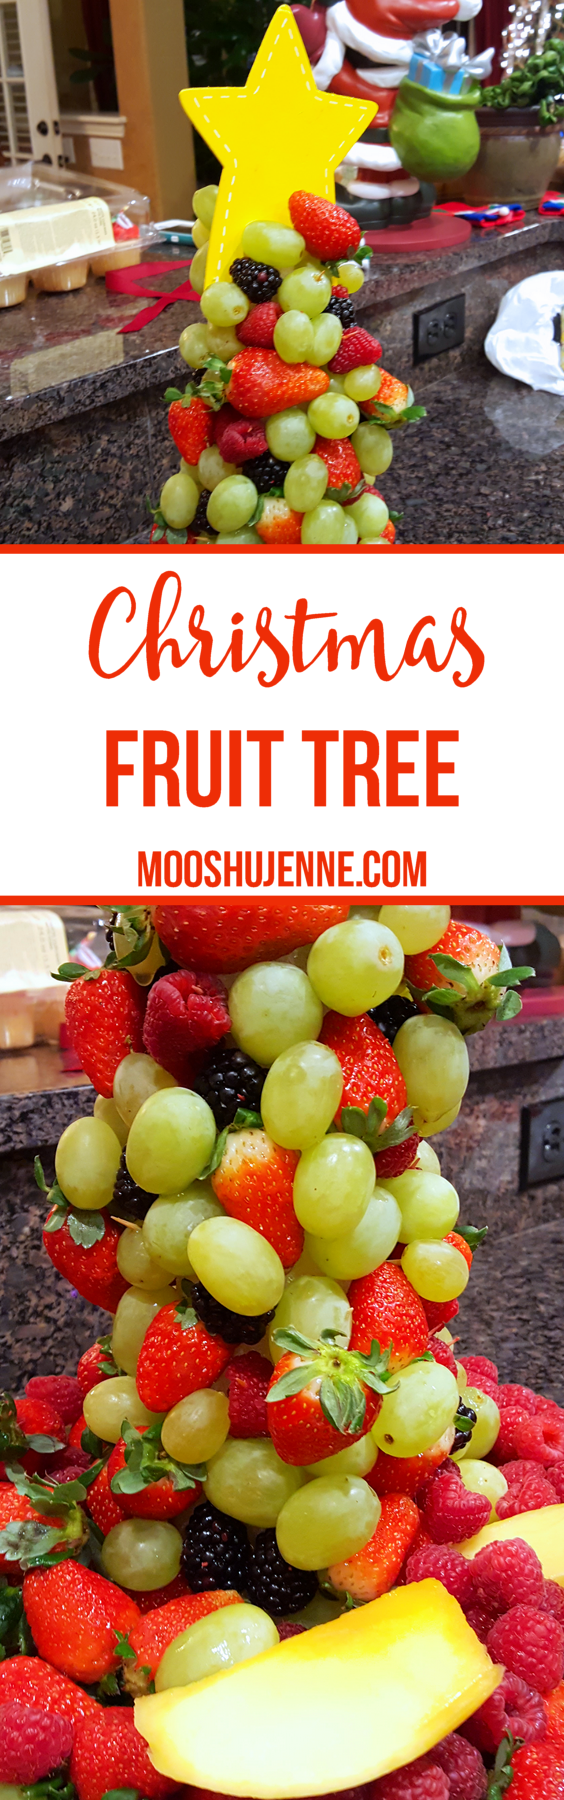 First, I thought of a vegetable/fruit tray in the shape of a tree. I looked around on Pinterest. Fiddled over a few ideas until we came to a wreath or a tree. We ended up picking the Christmas Fruit Tree. I thought I would share the DIY here with you.